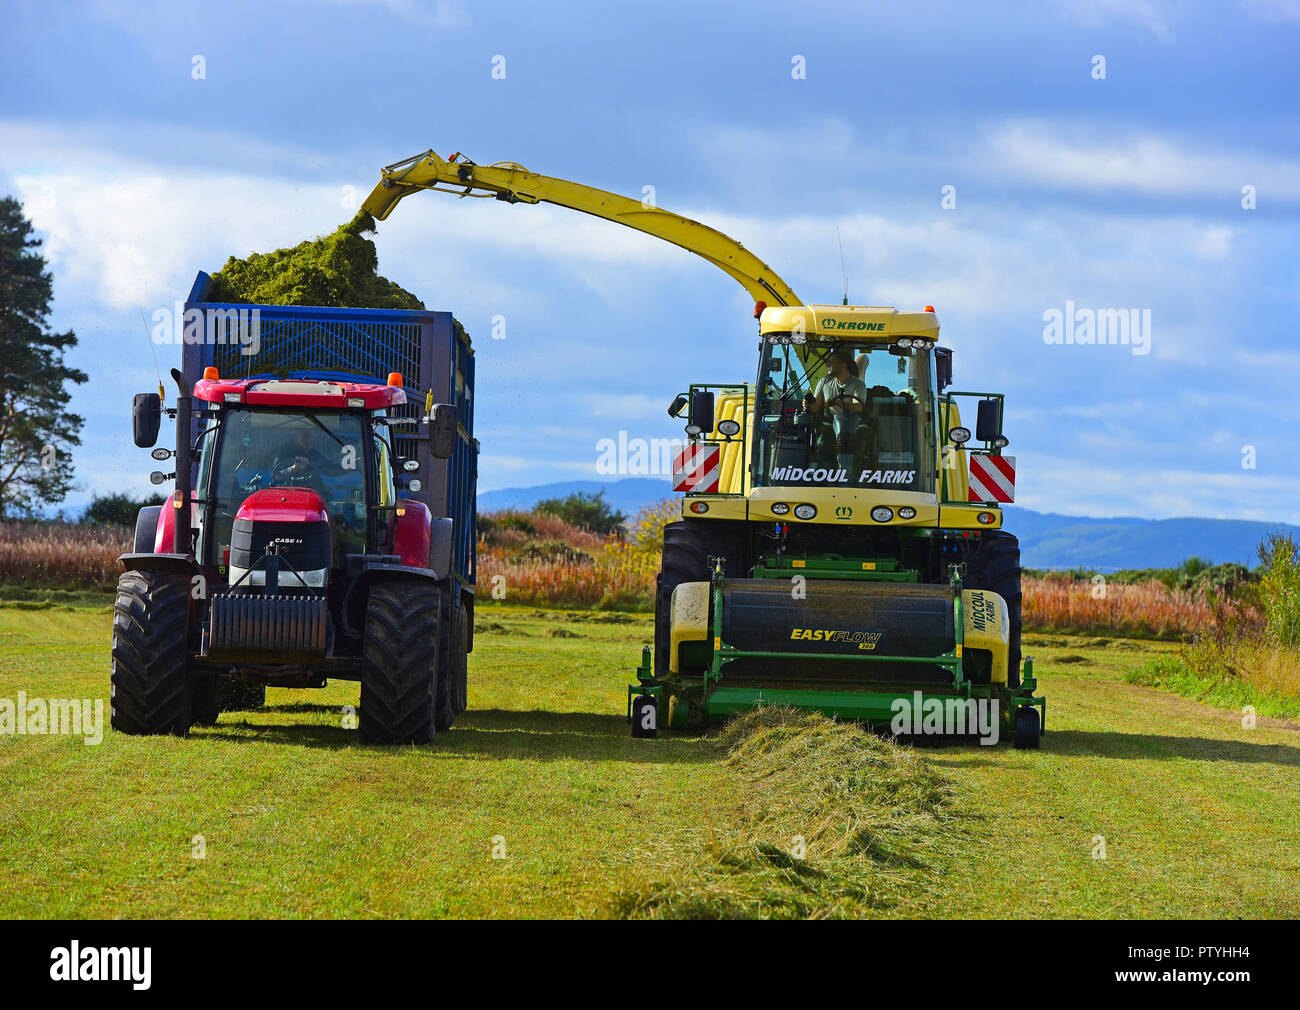 Gathering cut hay ready for the silage pit and will be used as Winter feed for the cattle herd near Inverness, in the Scottish Highlands UK. Stock Photo